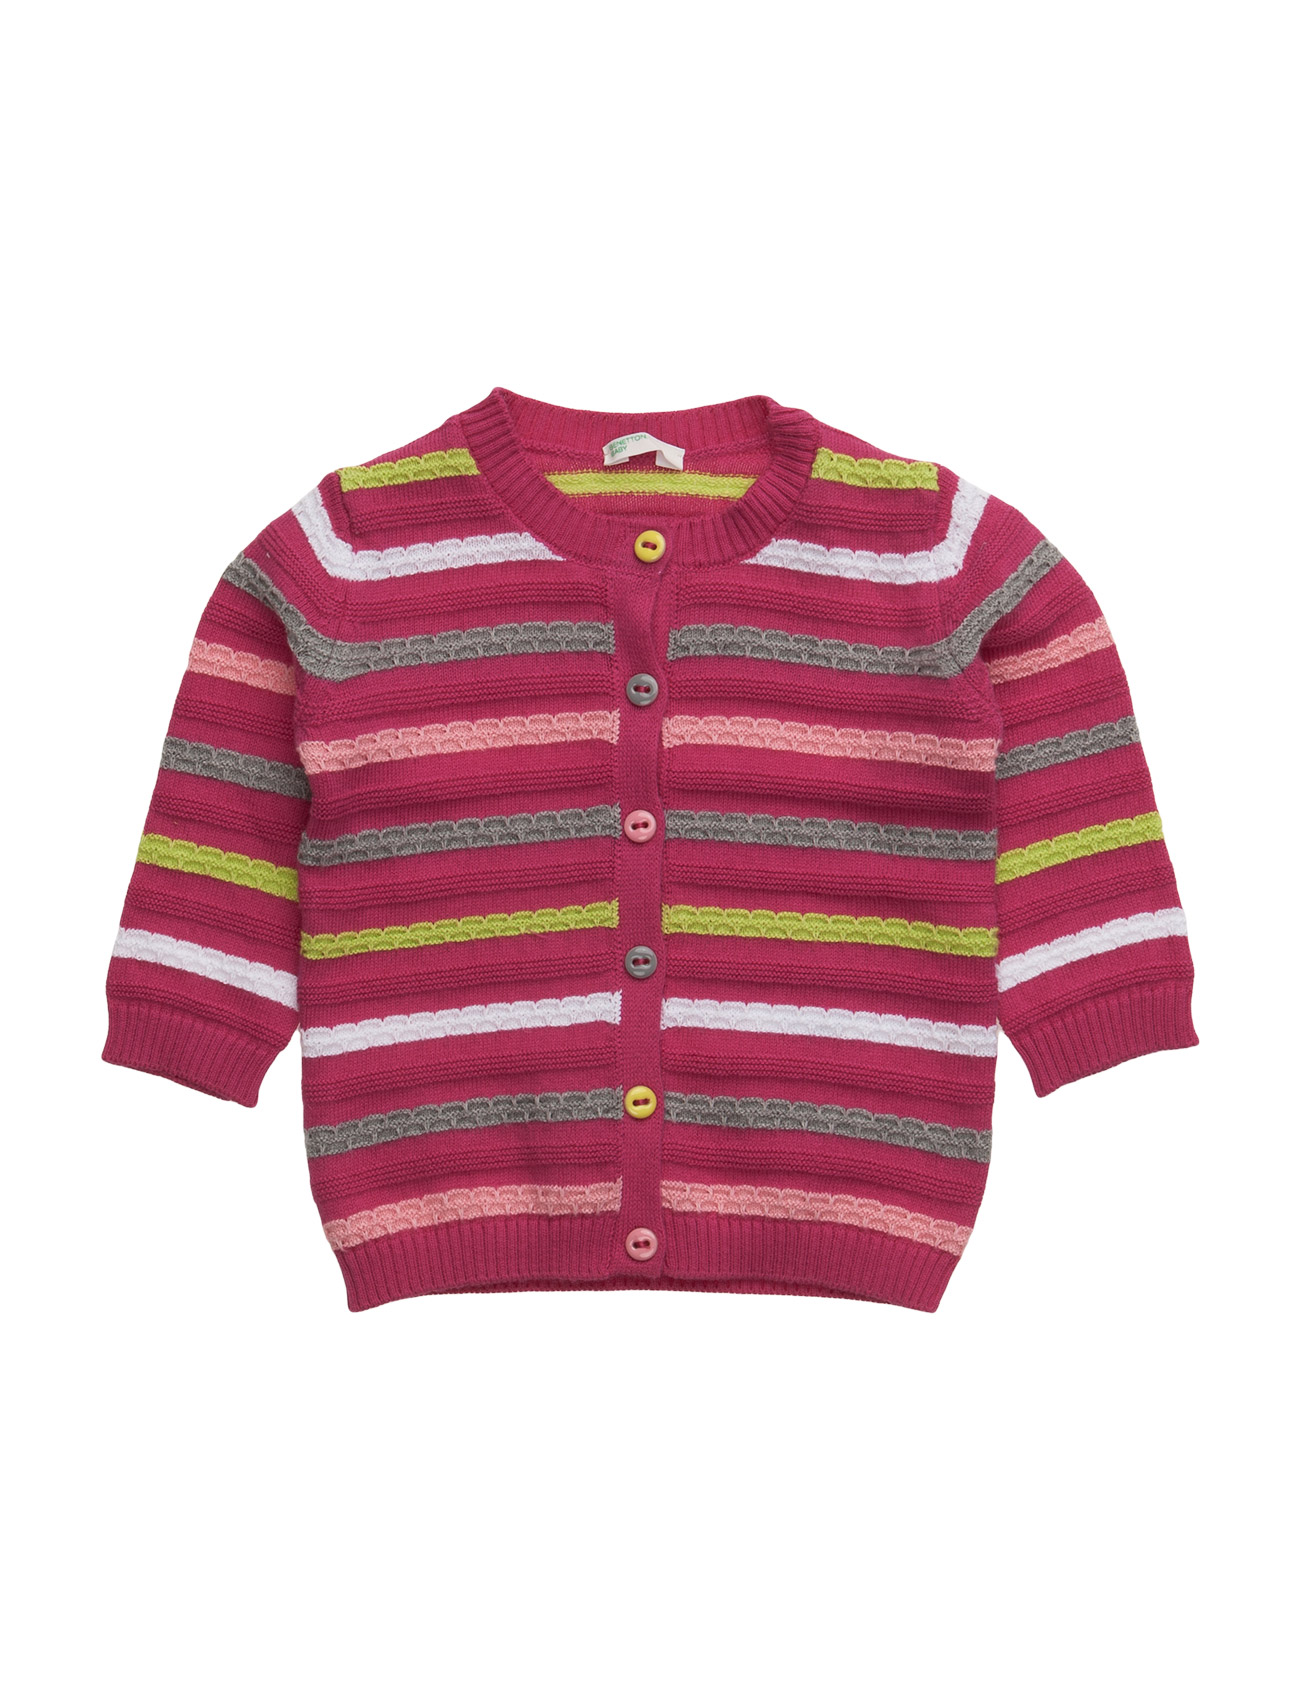 L/S Sweater United Colors of Benetton  til Børn i